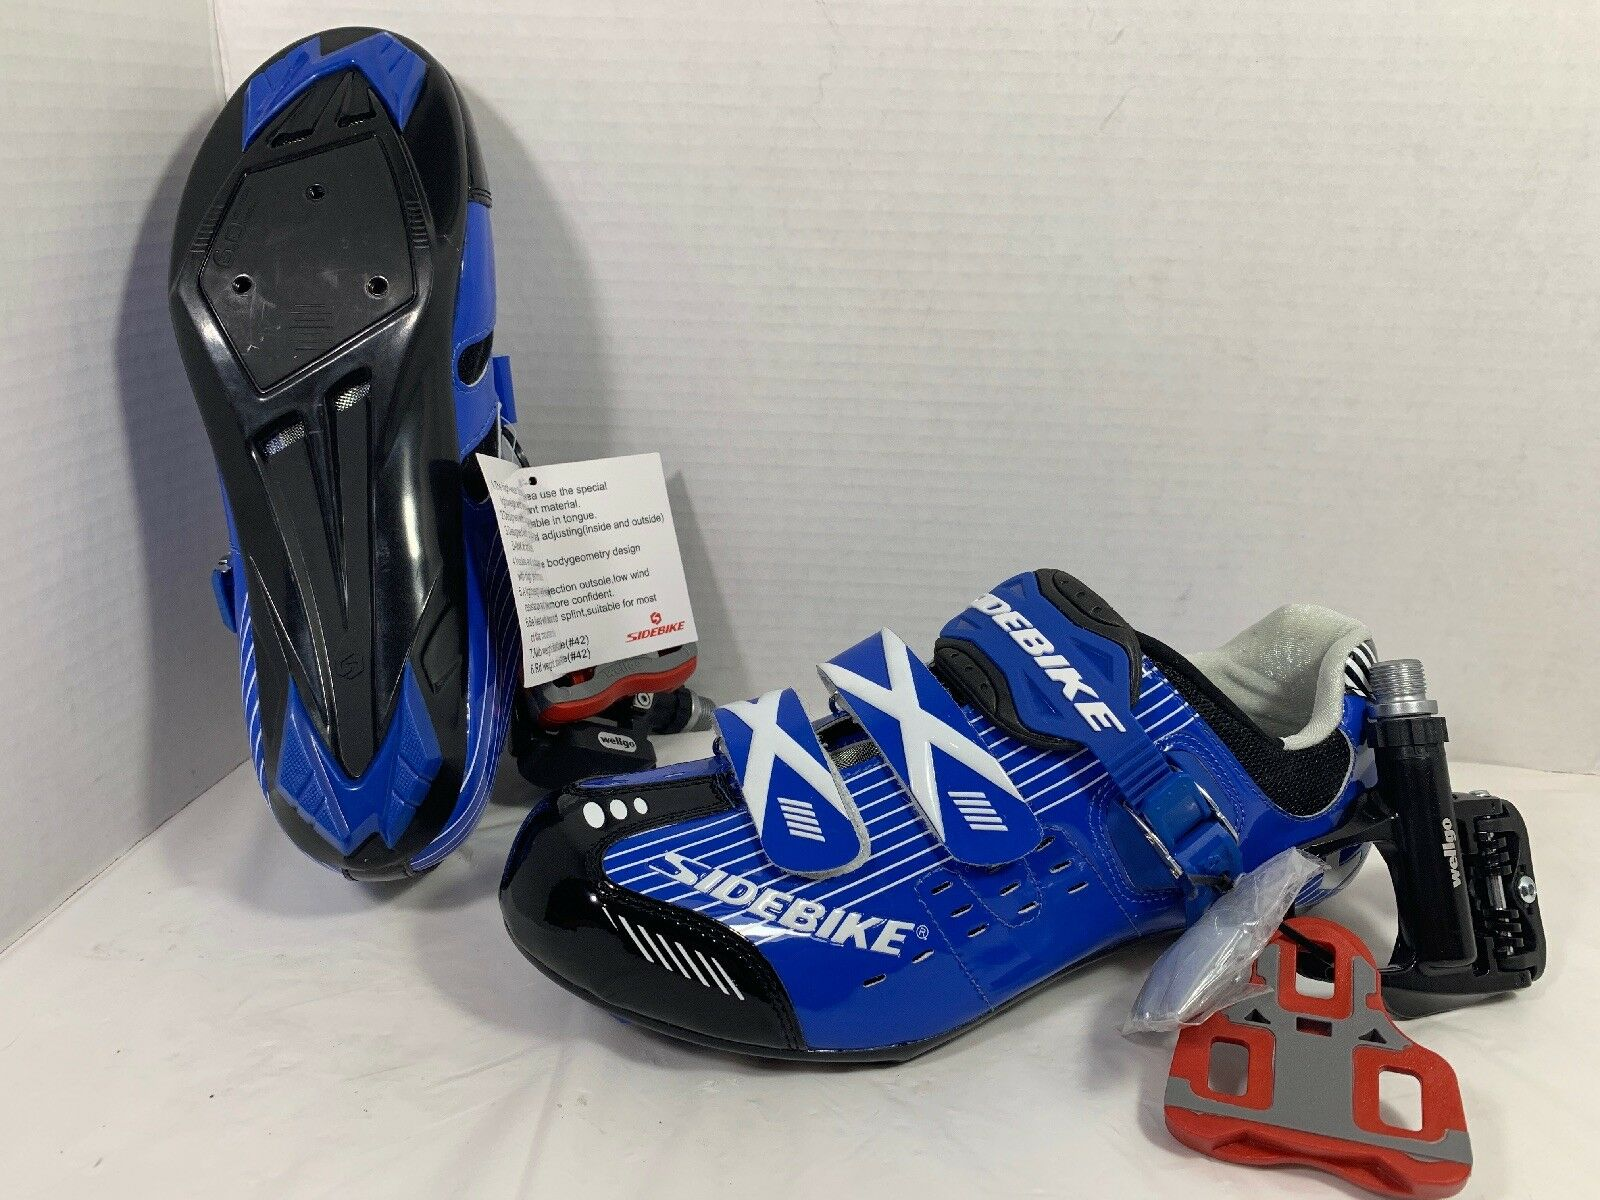 SIDEBIKE Men's Outdoor Road  Bike Cycling shoes Wellgo Pedal Cleats bluee New  get the latest